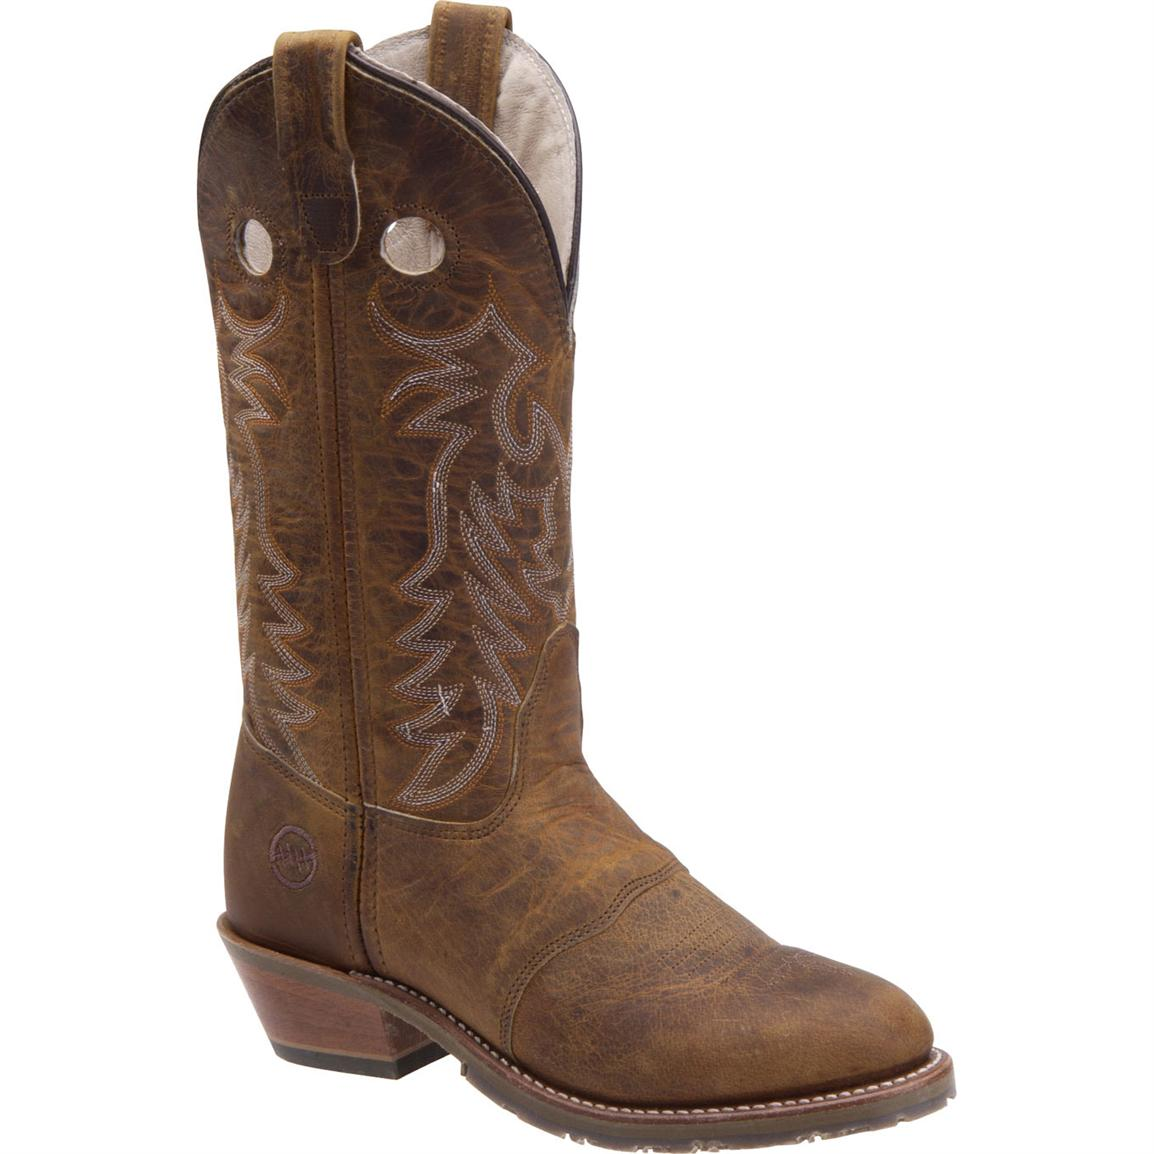 Cowboy Boots On Sale JU3W4Lfd